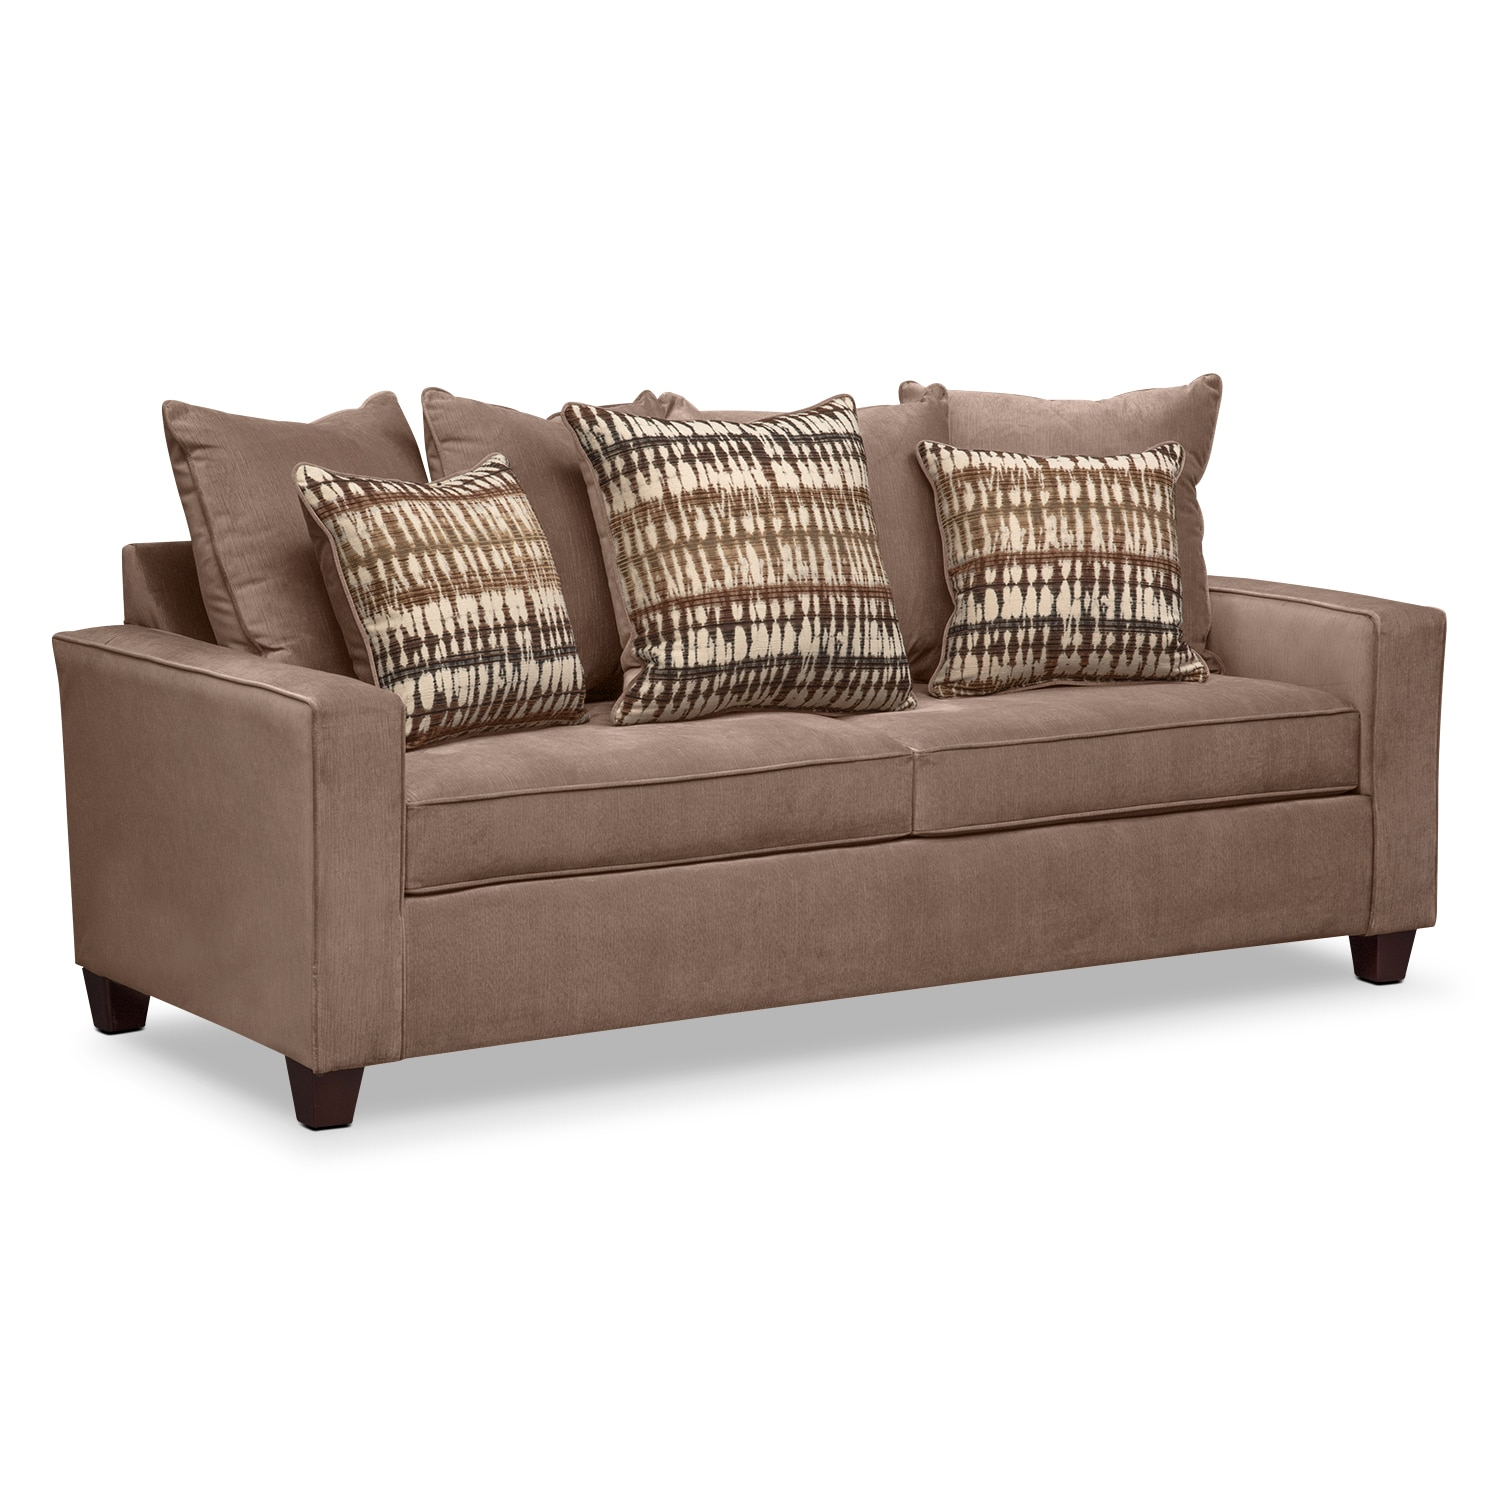 Living Room Furniture - Bryden Queen Innerspring Sleeper Sofa - Chocolate